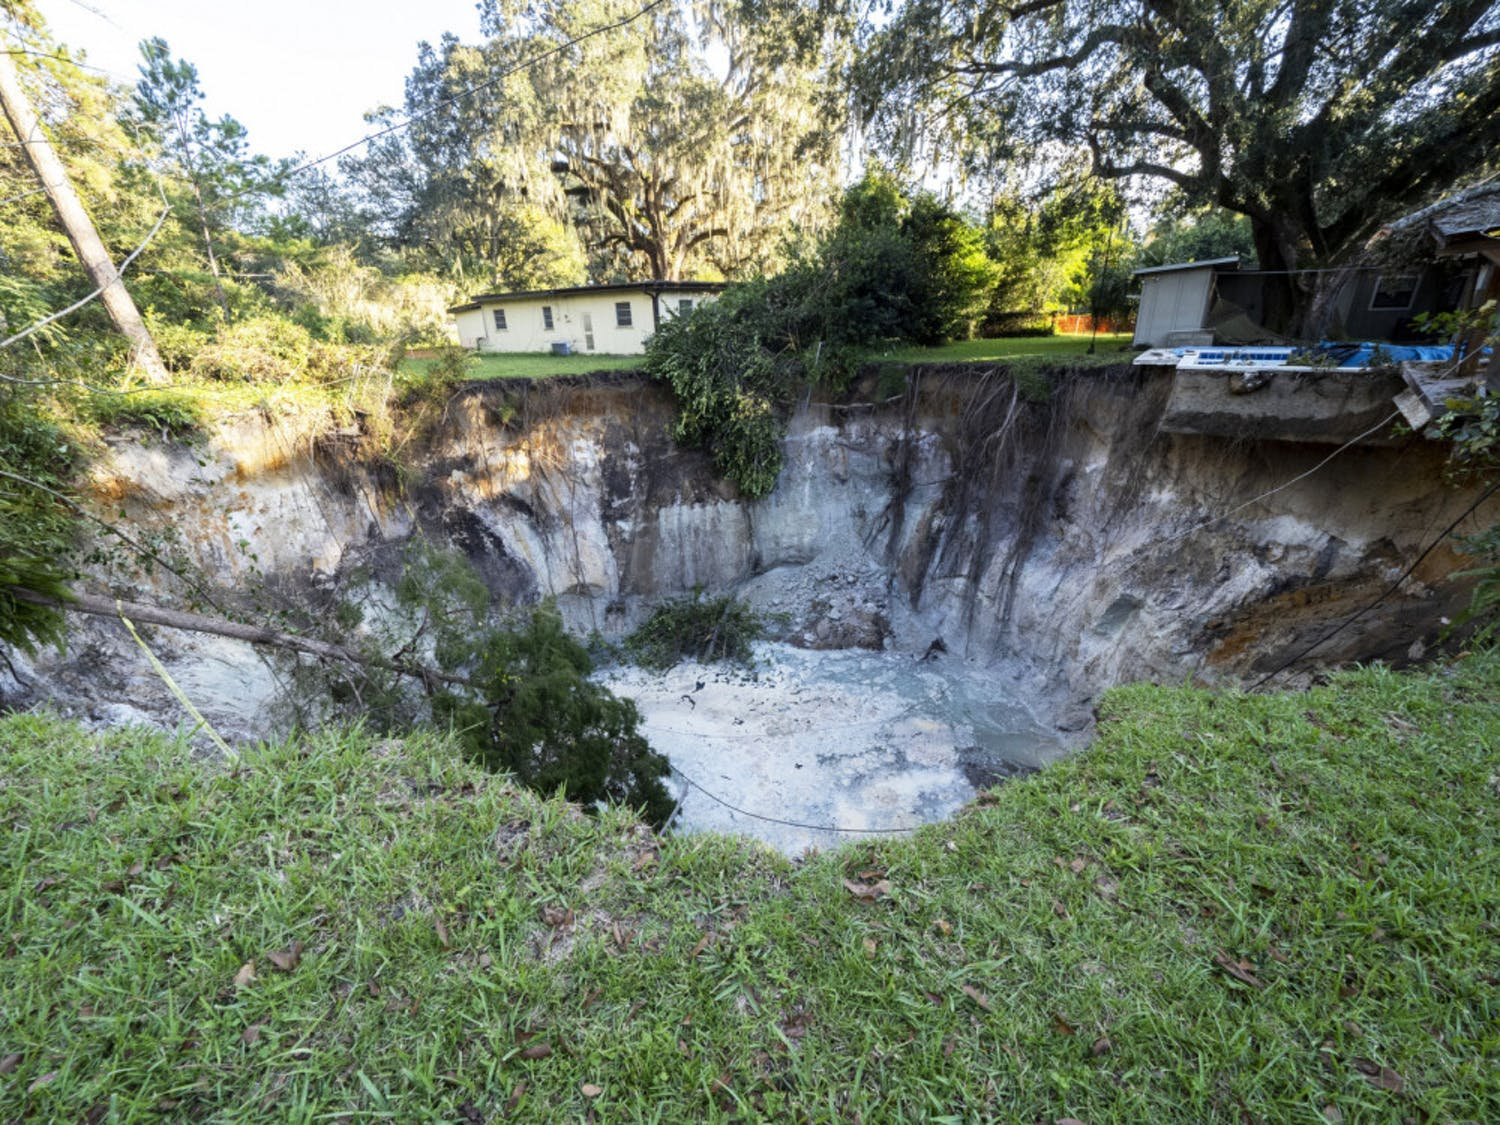 A sink hole that appeared during the week is seen behind NW 14th Place on Sunday, Oct. 25, 2020. People who live in the homes surrounding the sinkhole were asked to evacuate this past Thursday.